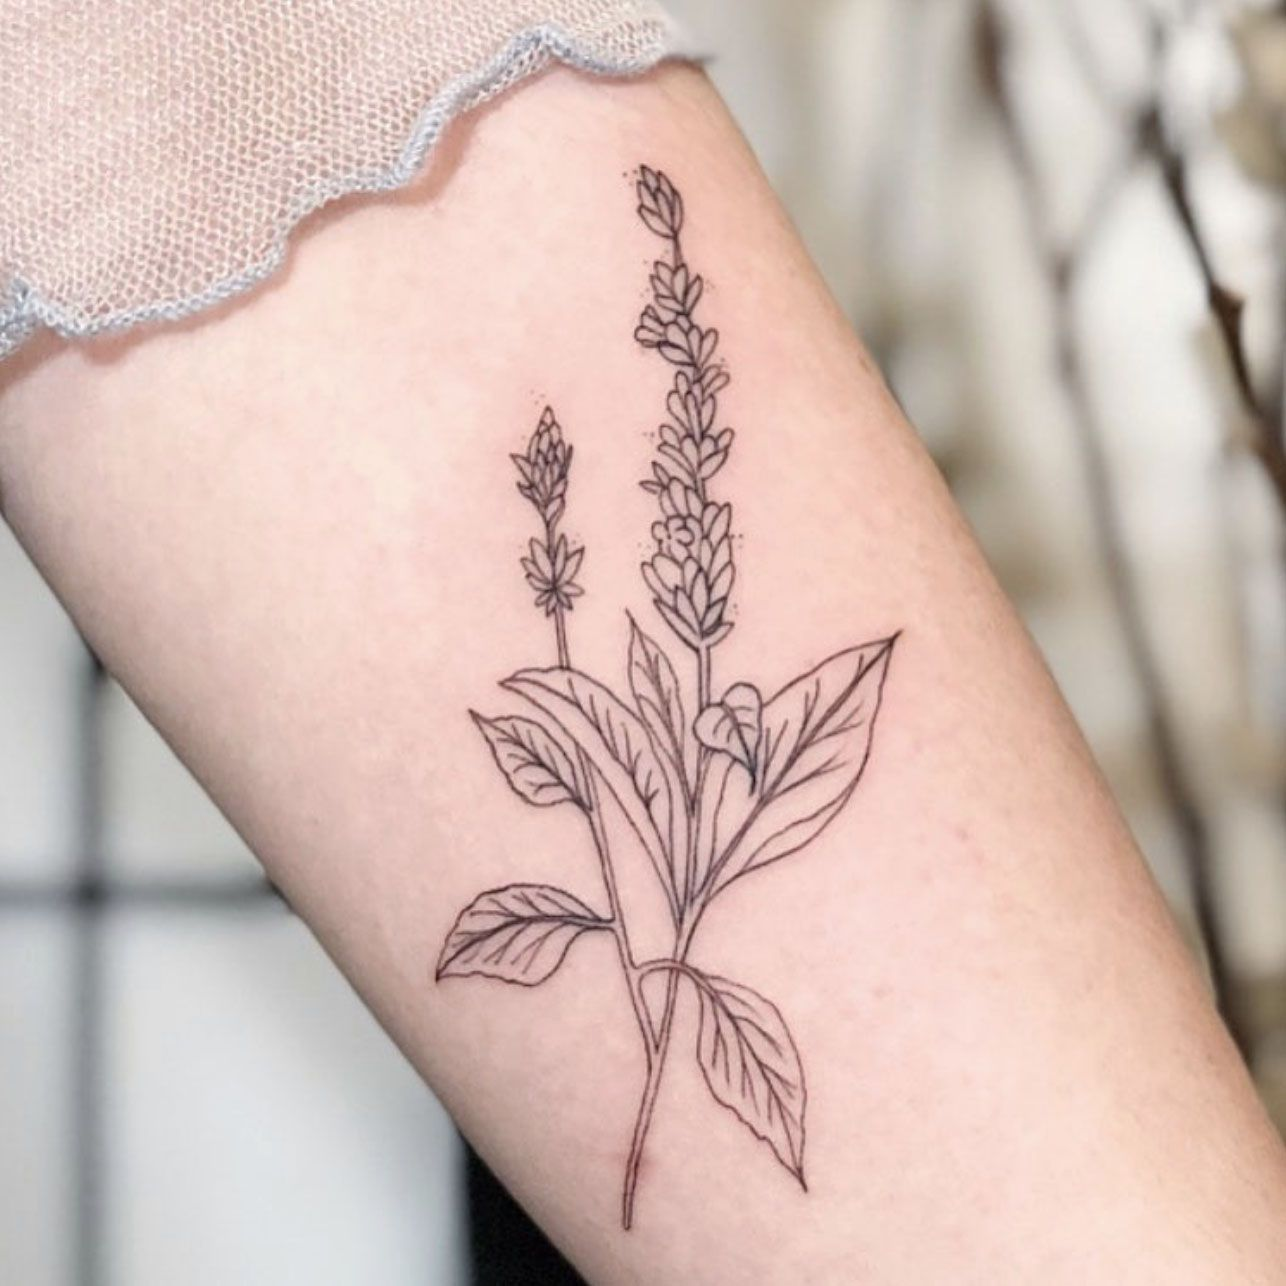 Everything You Should Know Before Getting a Stick-and-Poke Tattoo